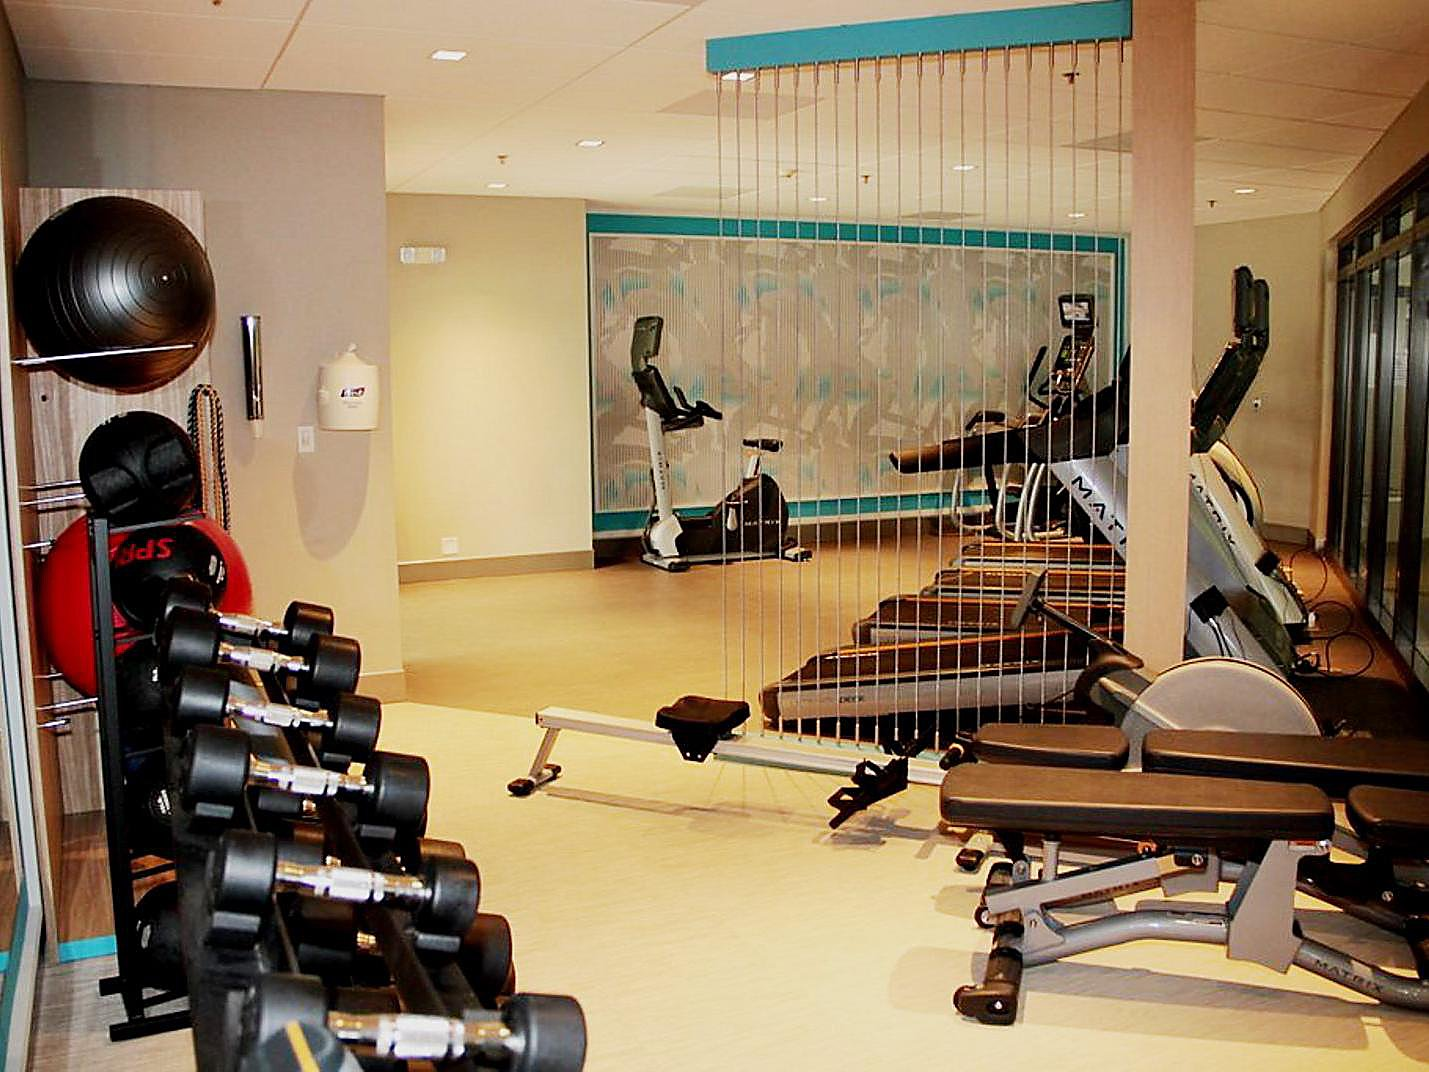 Crowne plaza dulles airport health and fitness facilities